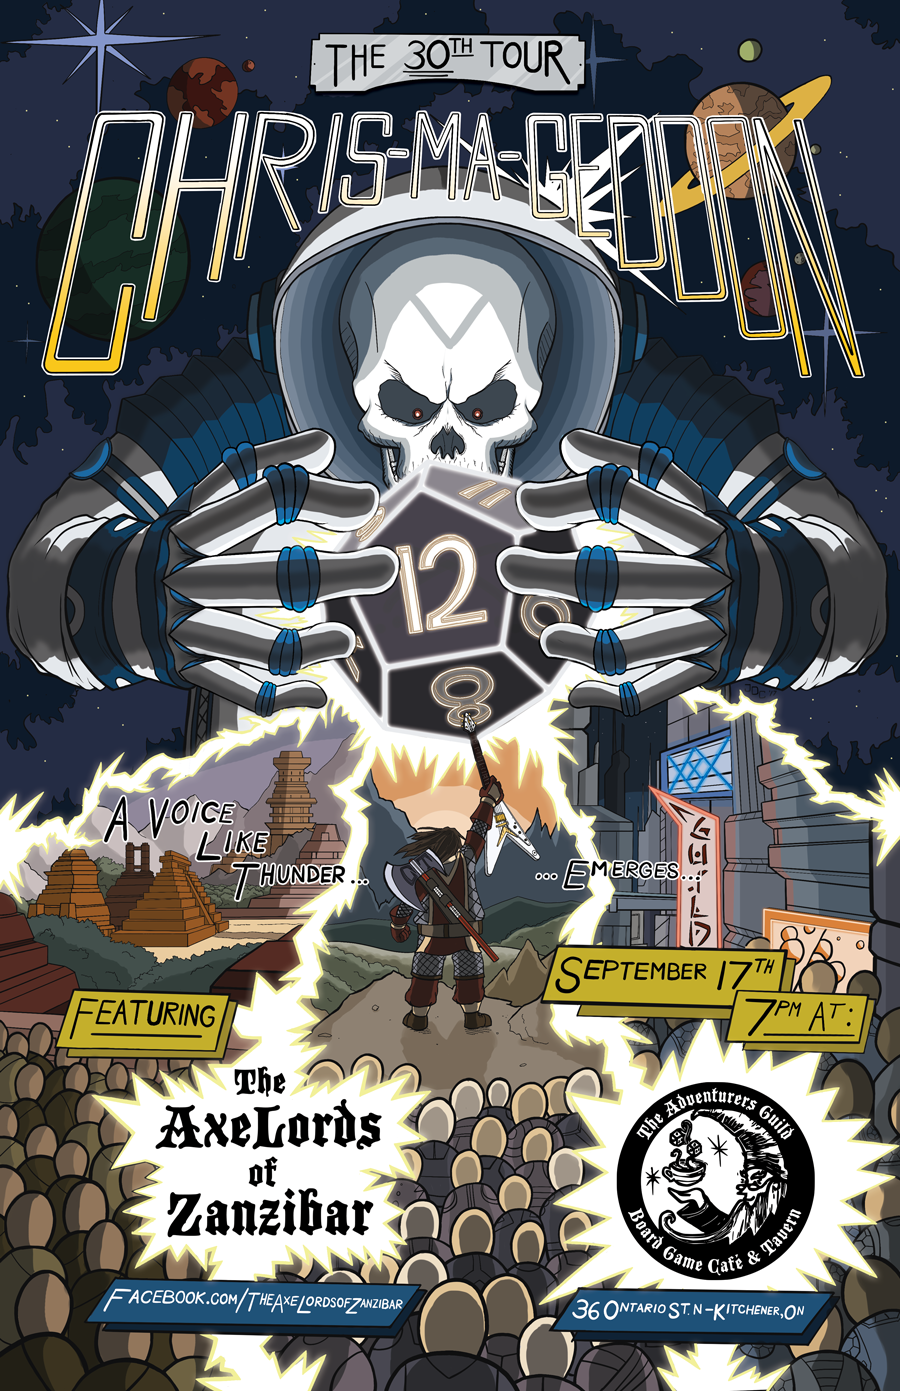 Chris-Ma-Geddon Event Poster